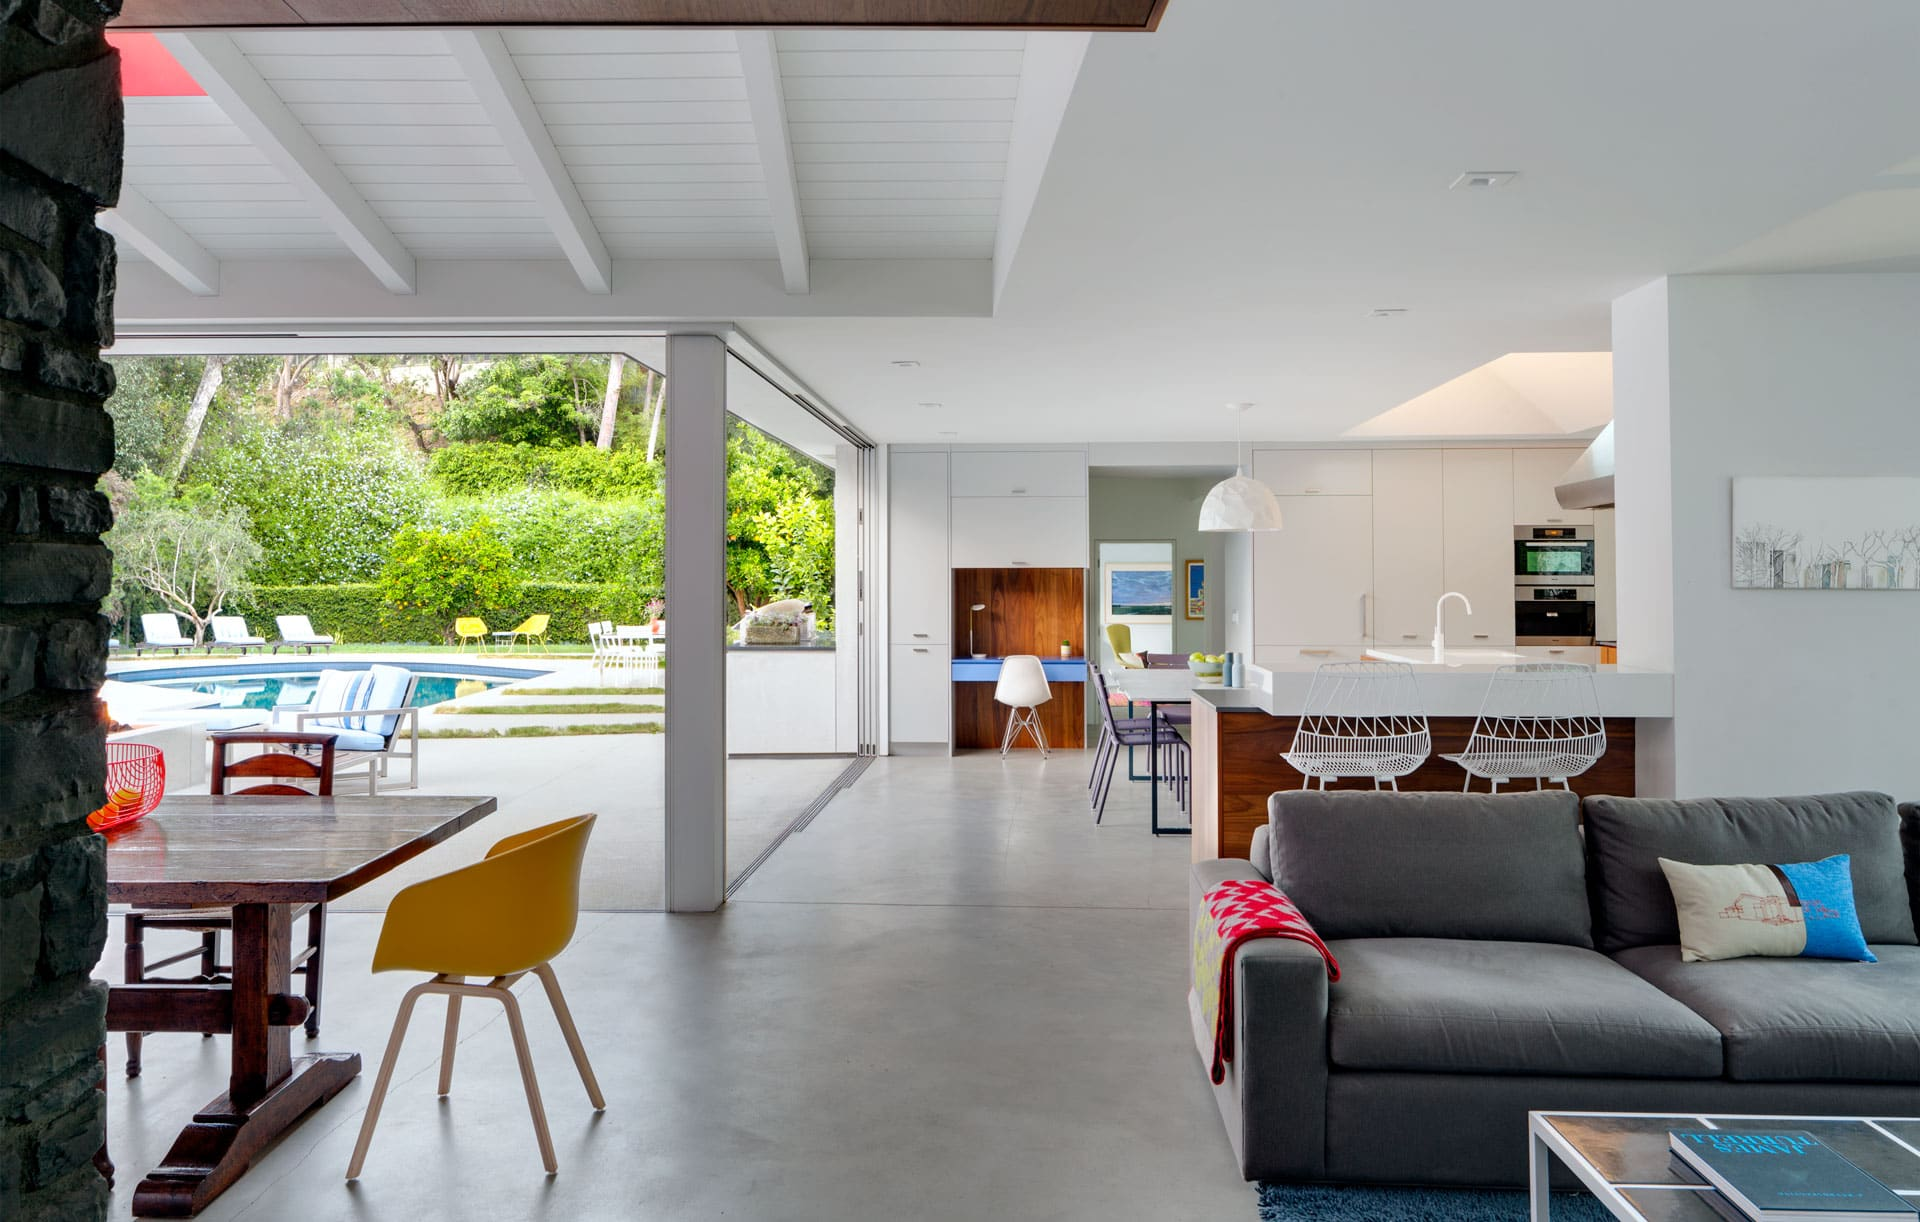 Ranch Redux - Interior view of light-filled modern den and kitchen, with pool visible through sliding doors. Photograph by Trevor Tondro.